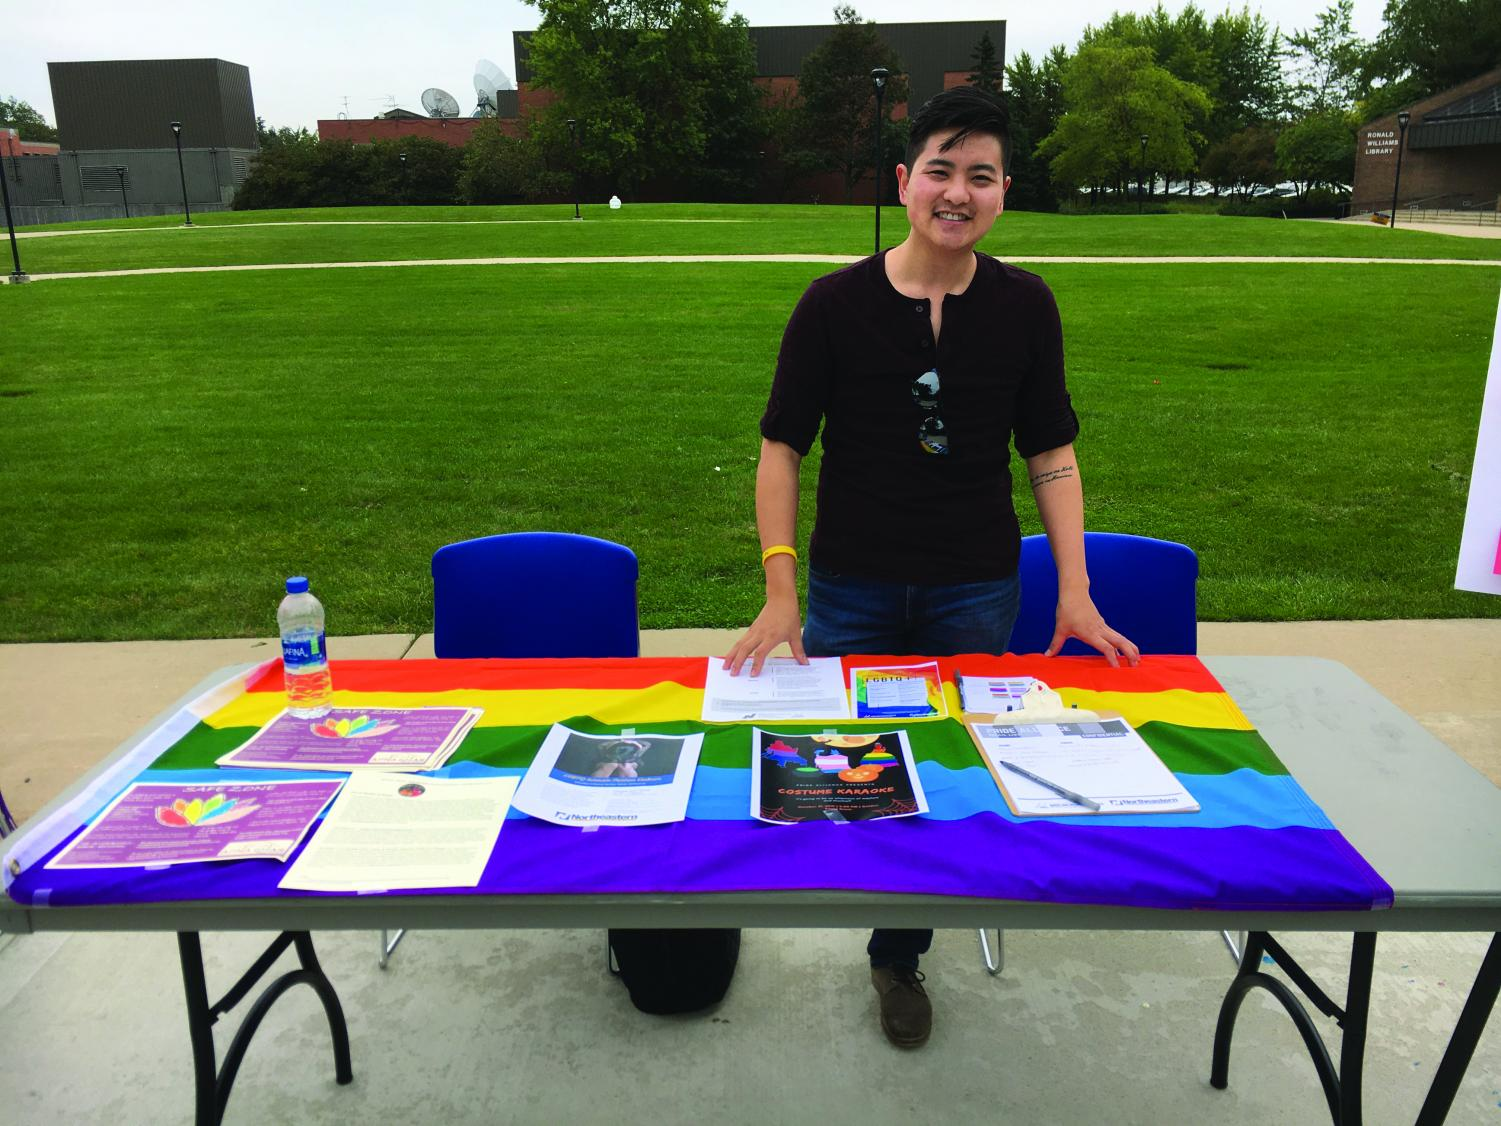 Francis Ahn welcomes students to the resource fair at the Pride Alliance table. | Photo by Rebecca Denham